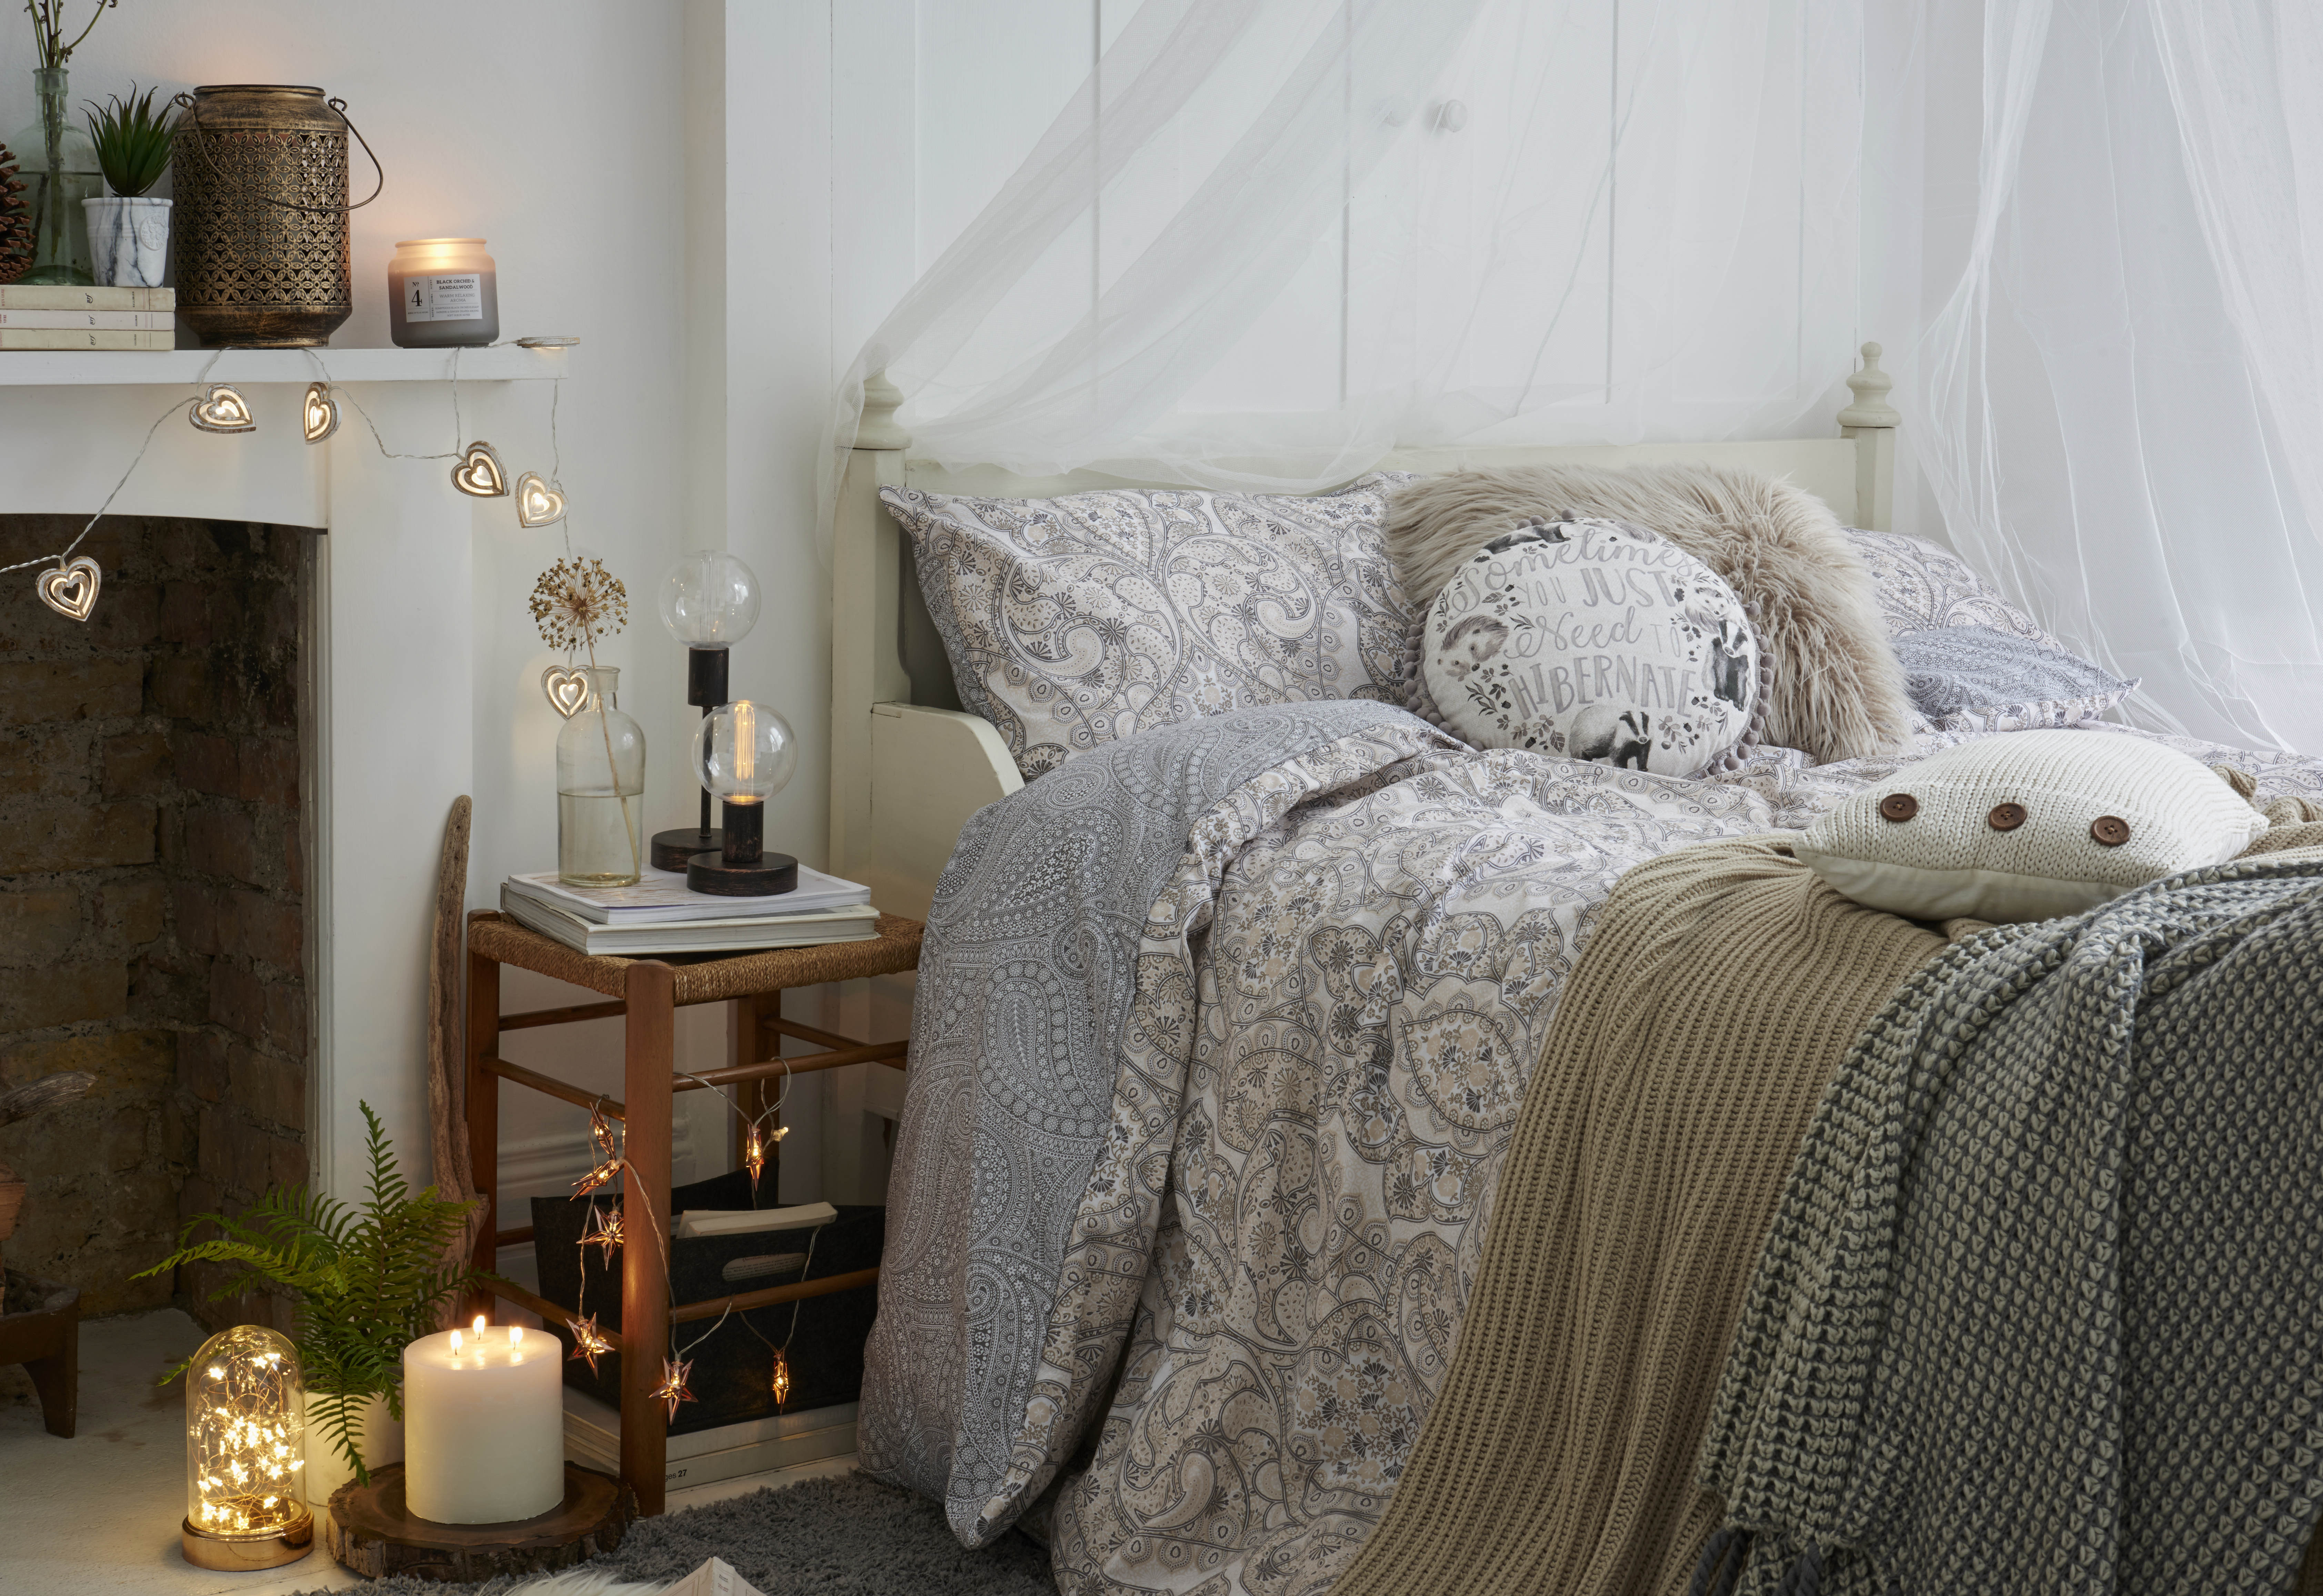 Penneys Latest Homeware Collection Is The Stuff Of Boho